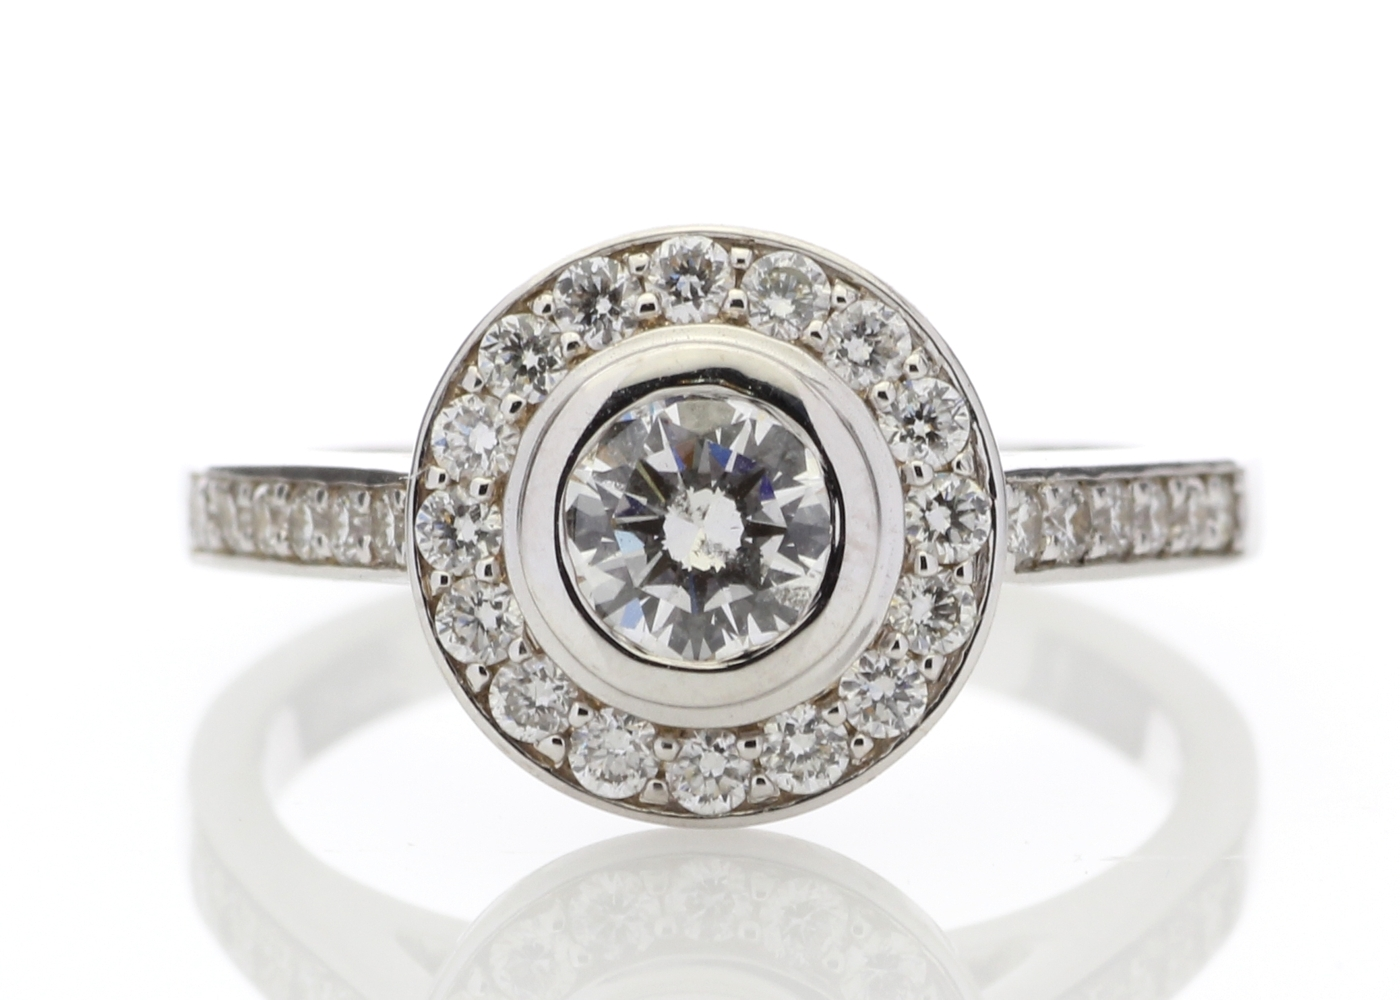 18ct White Gold Single Stone With Halo Setting Ring (0.50) 1.00 Carats - Image 5 of 6